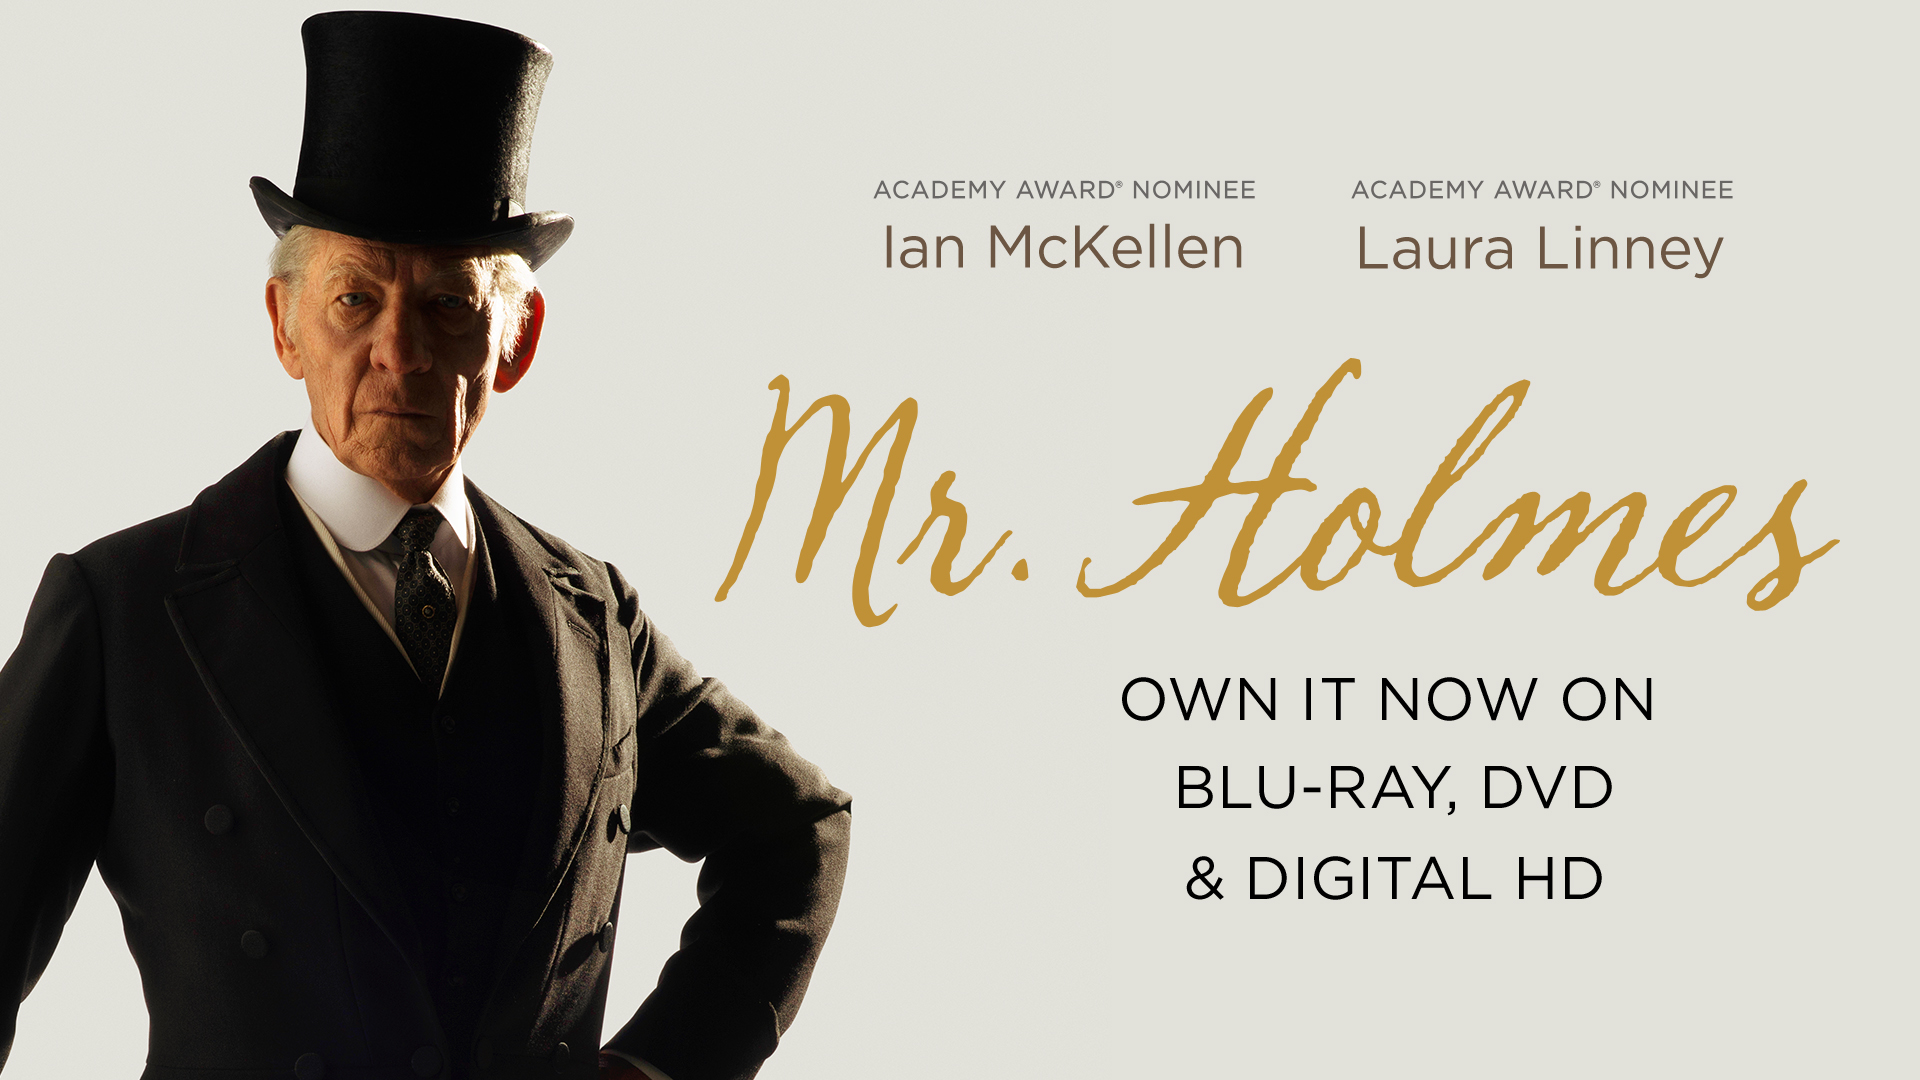 Mr. Holmes - Home Entertainment Trailer (HD) | Look for it on Blu-ray, DVD, and Digital HD